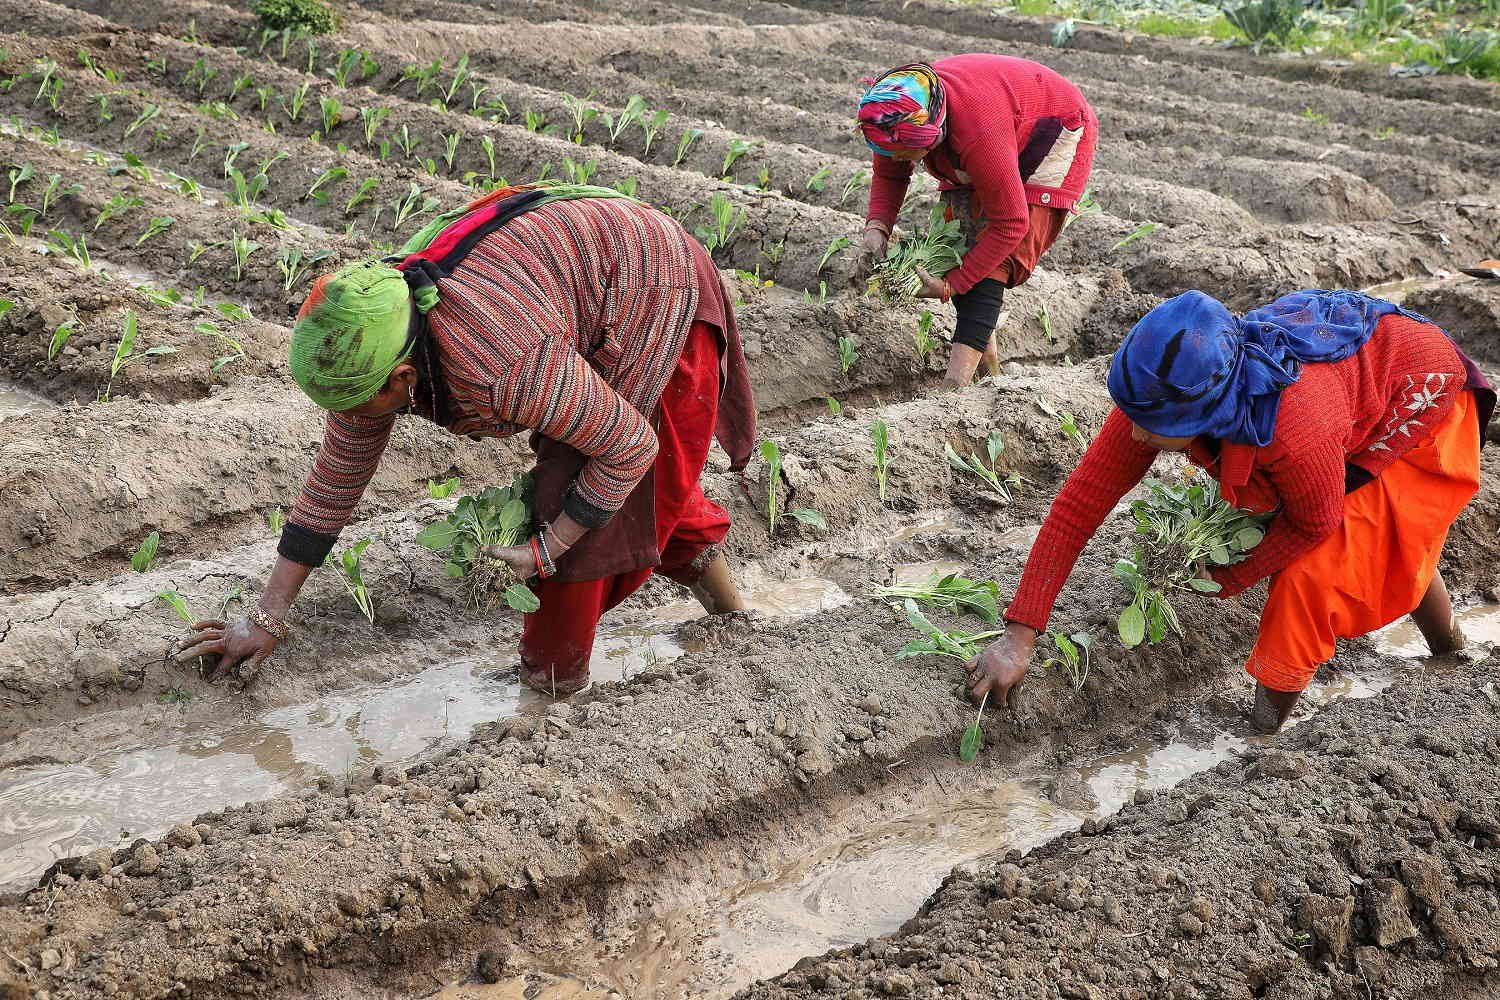 Women Farmers Being Denied Their Due: Activists